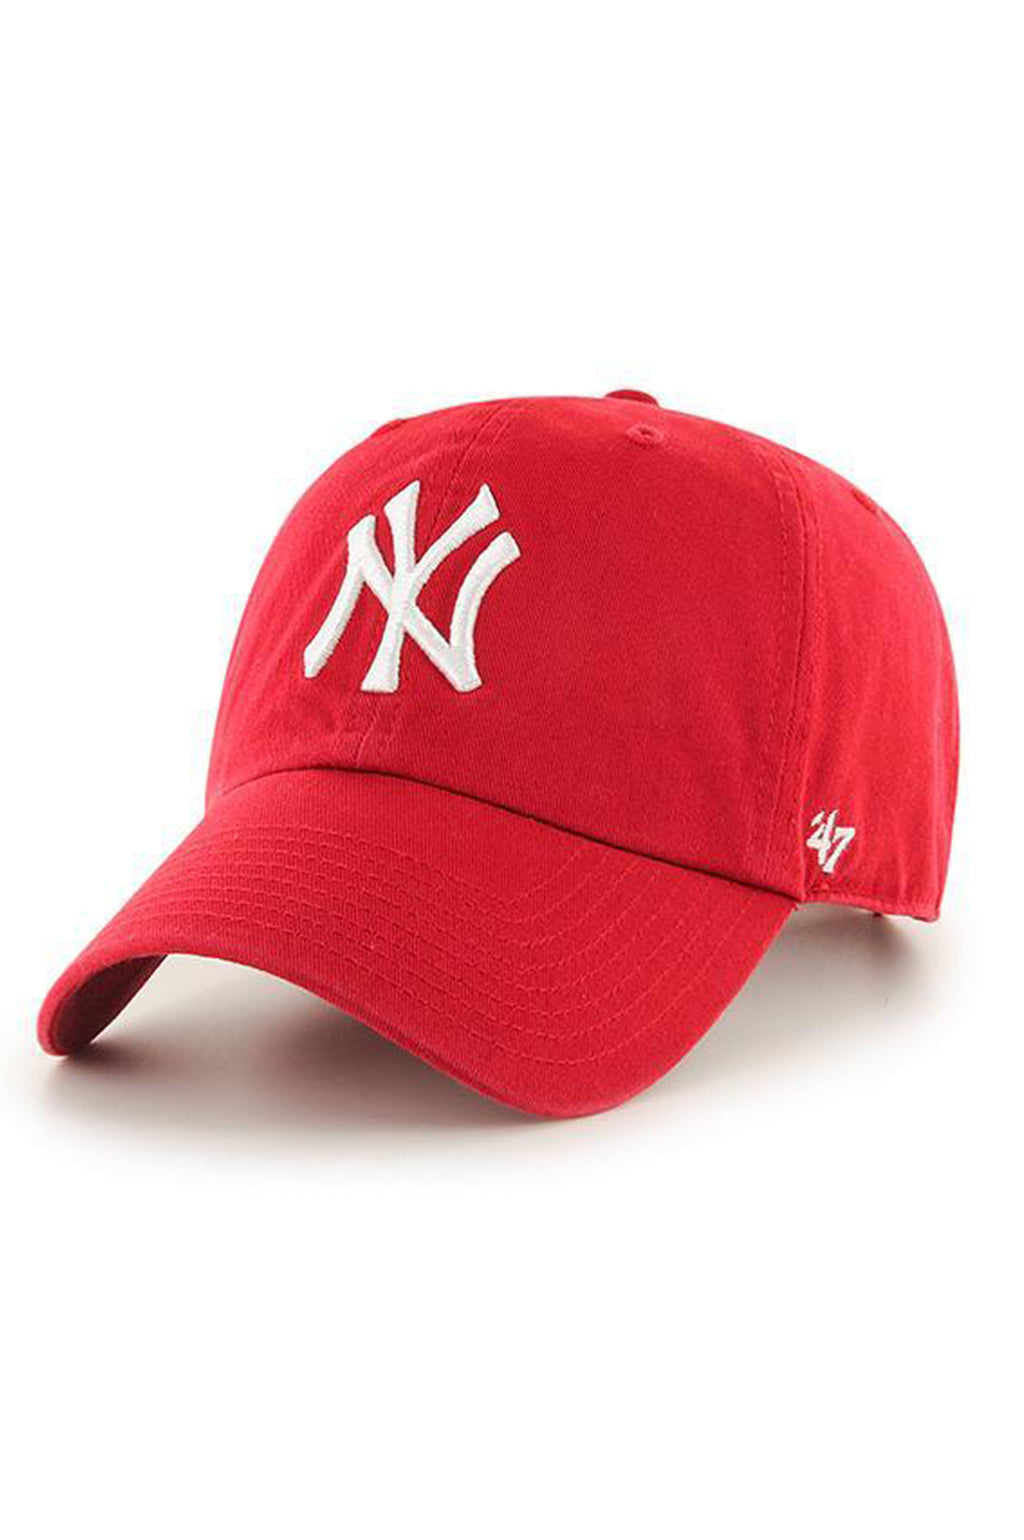 47' Clean Up Yankees Dad Hat